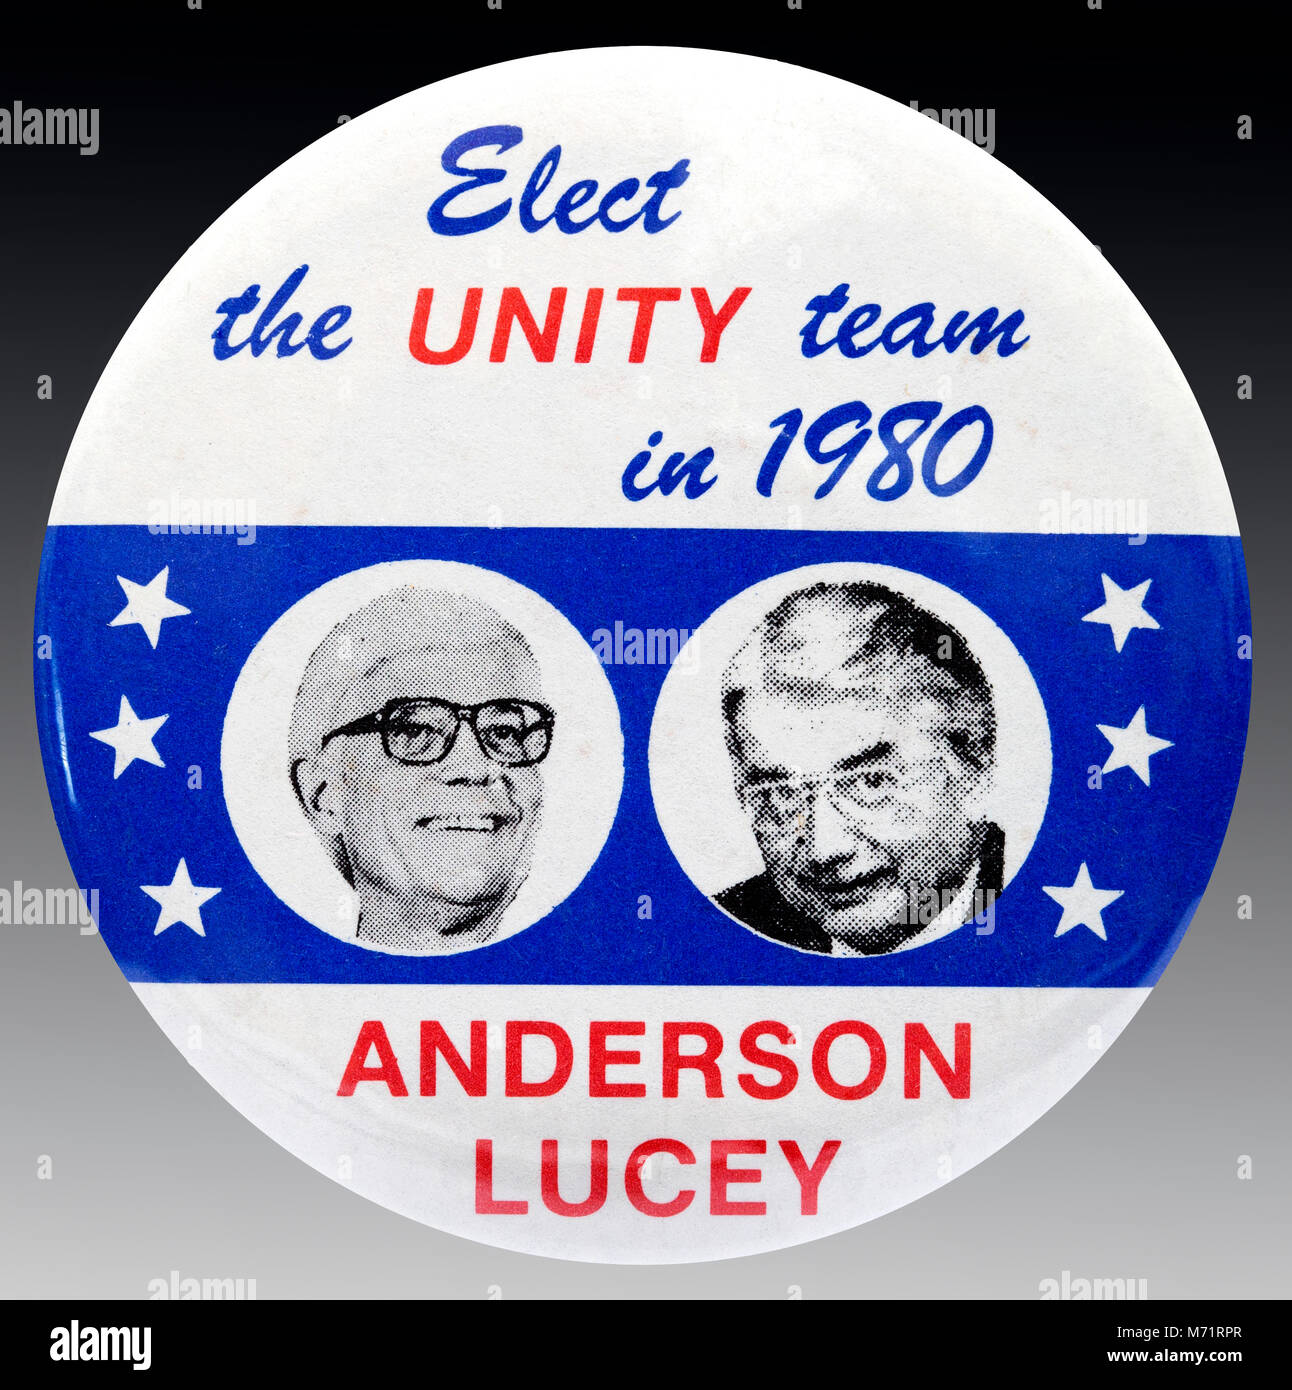 A 1980 United States presidential campaign button badge for the National Unity Party candidates John Anderson and Stock Photo